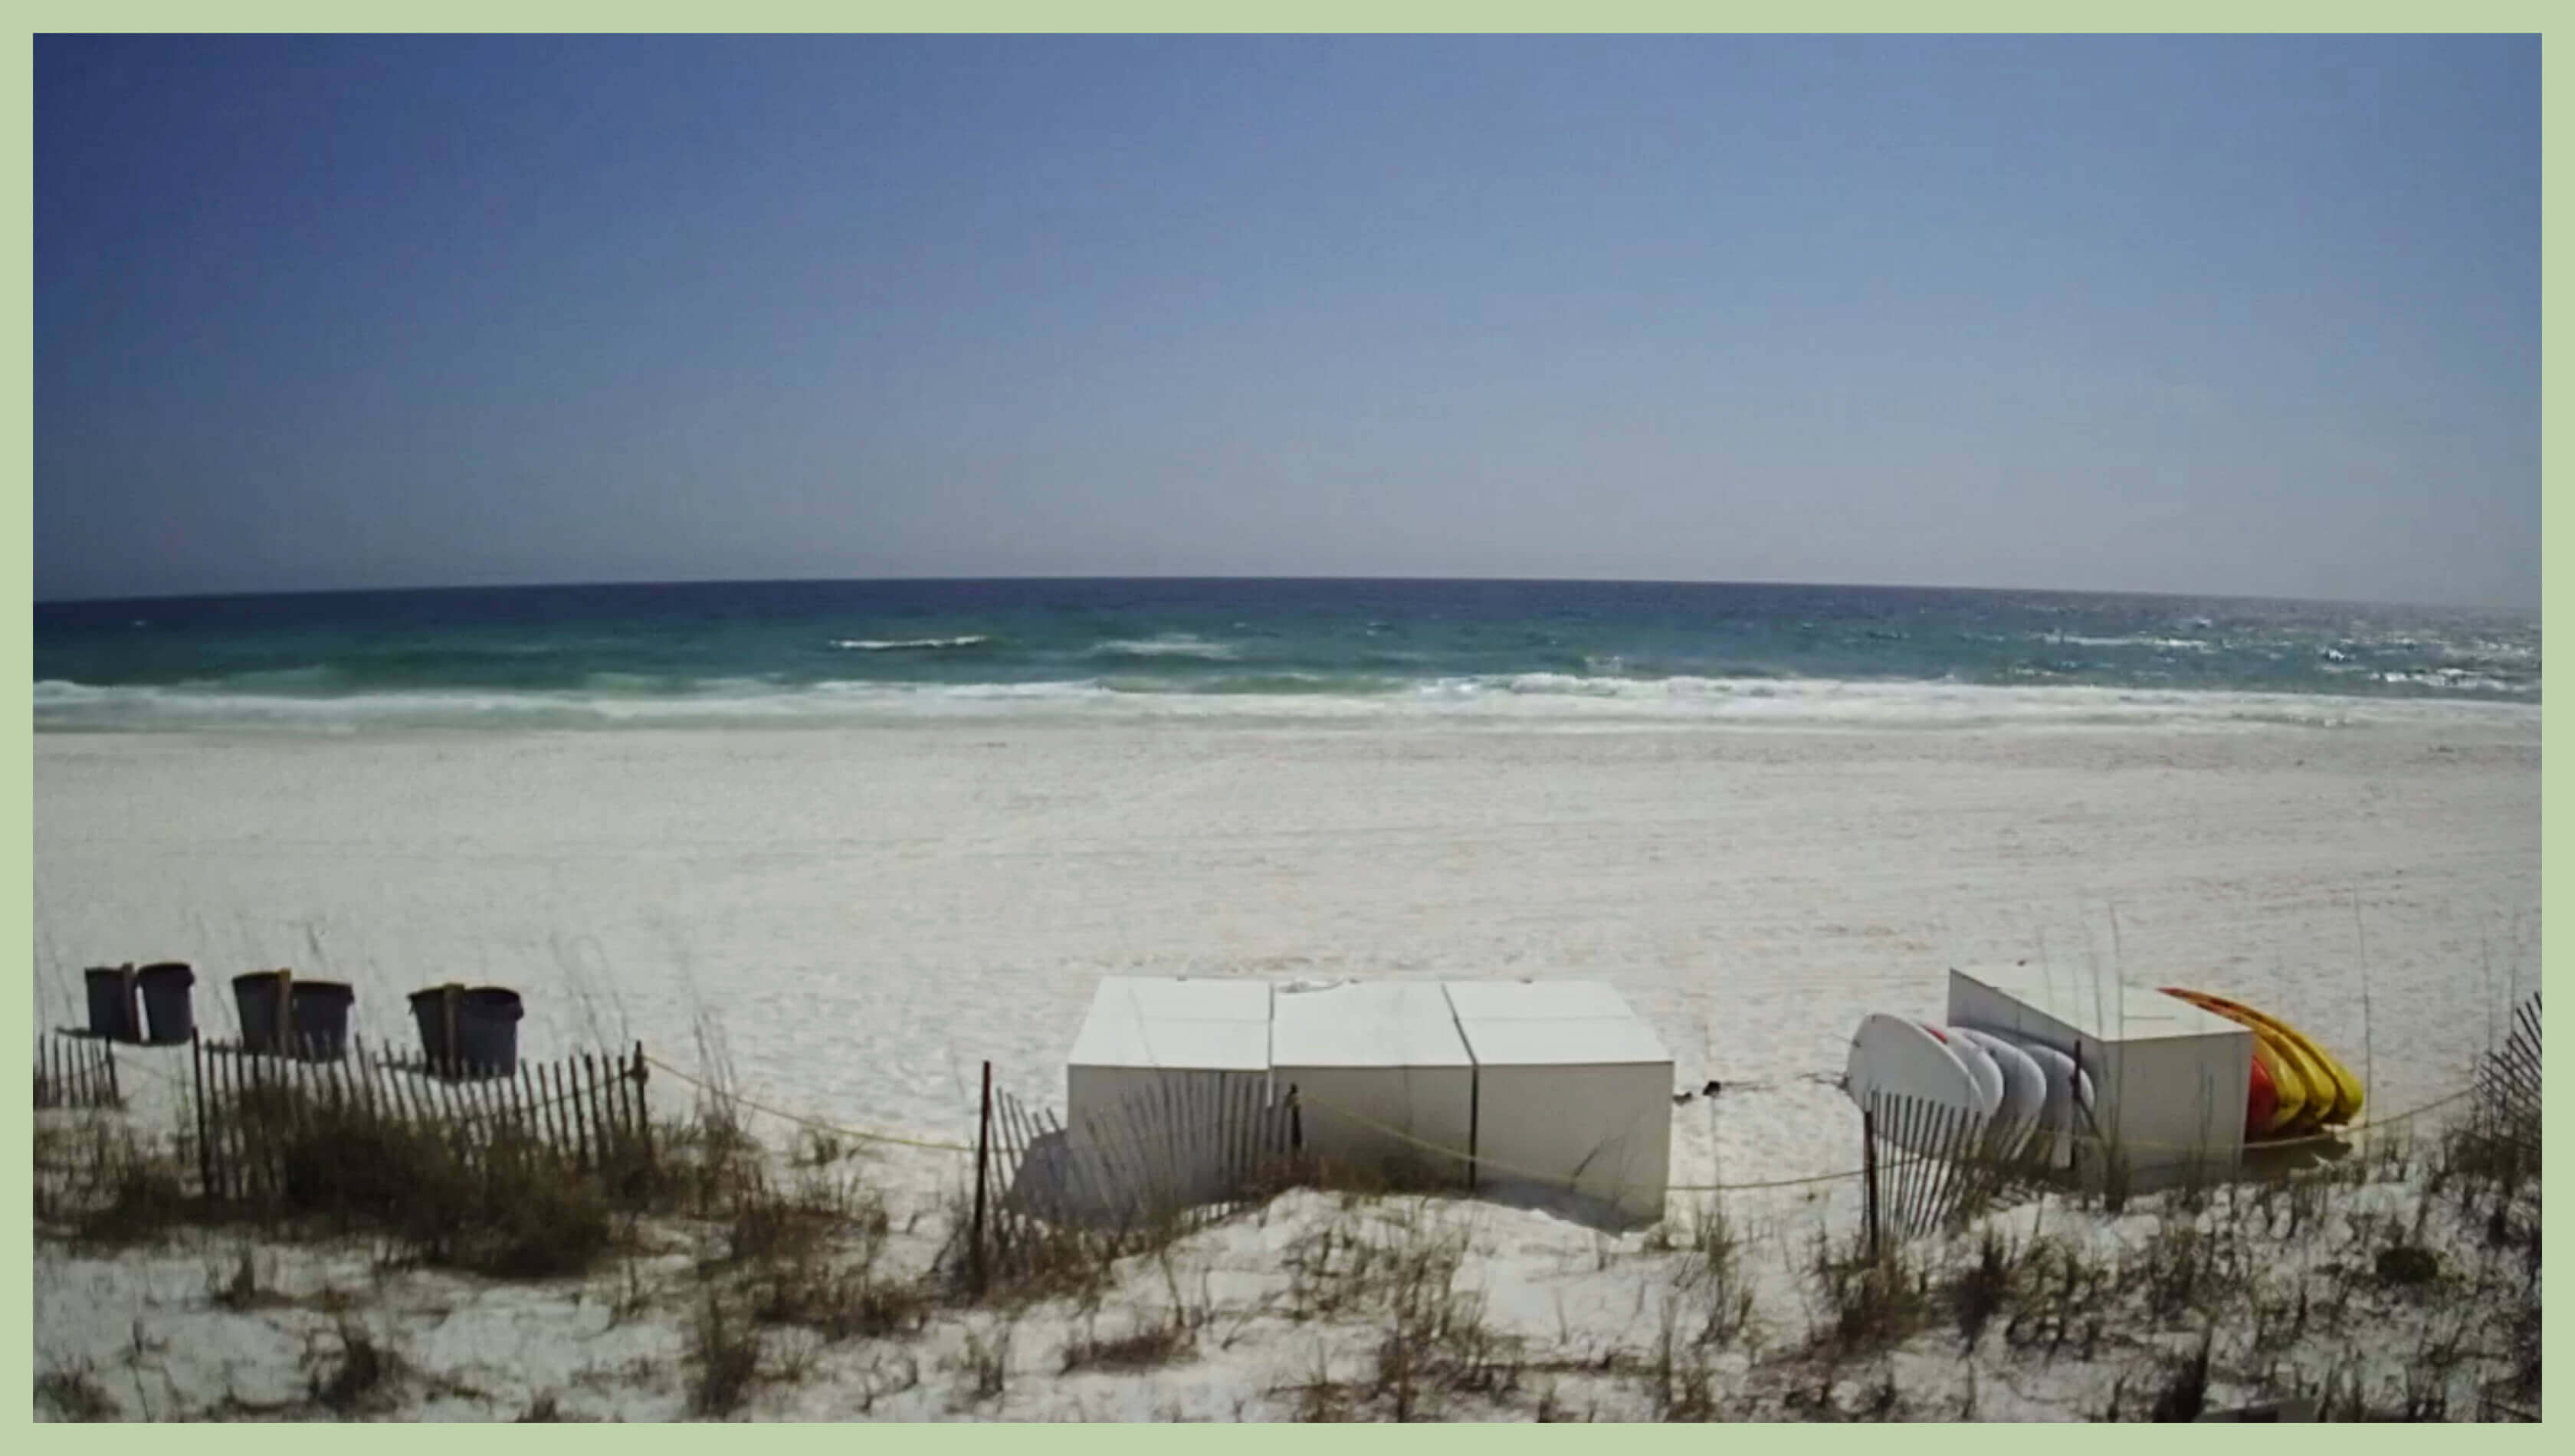 usa_destin_beaches_01